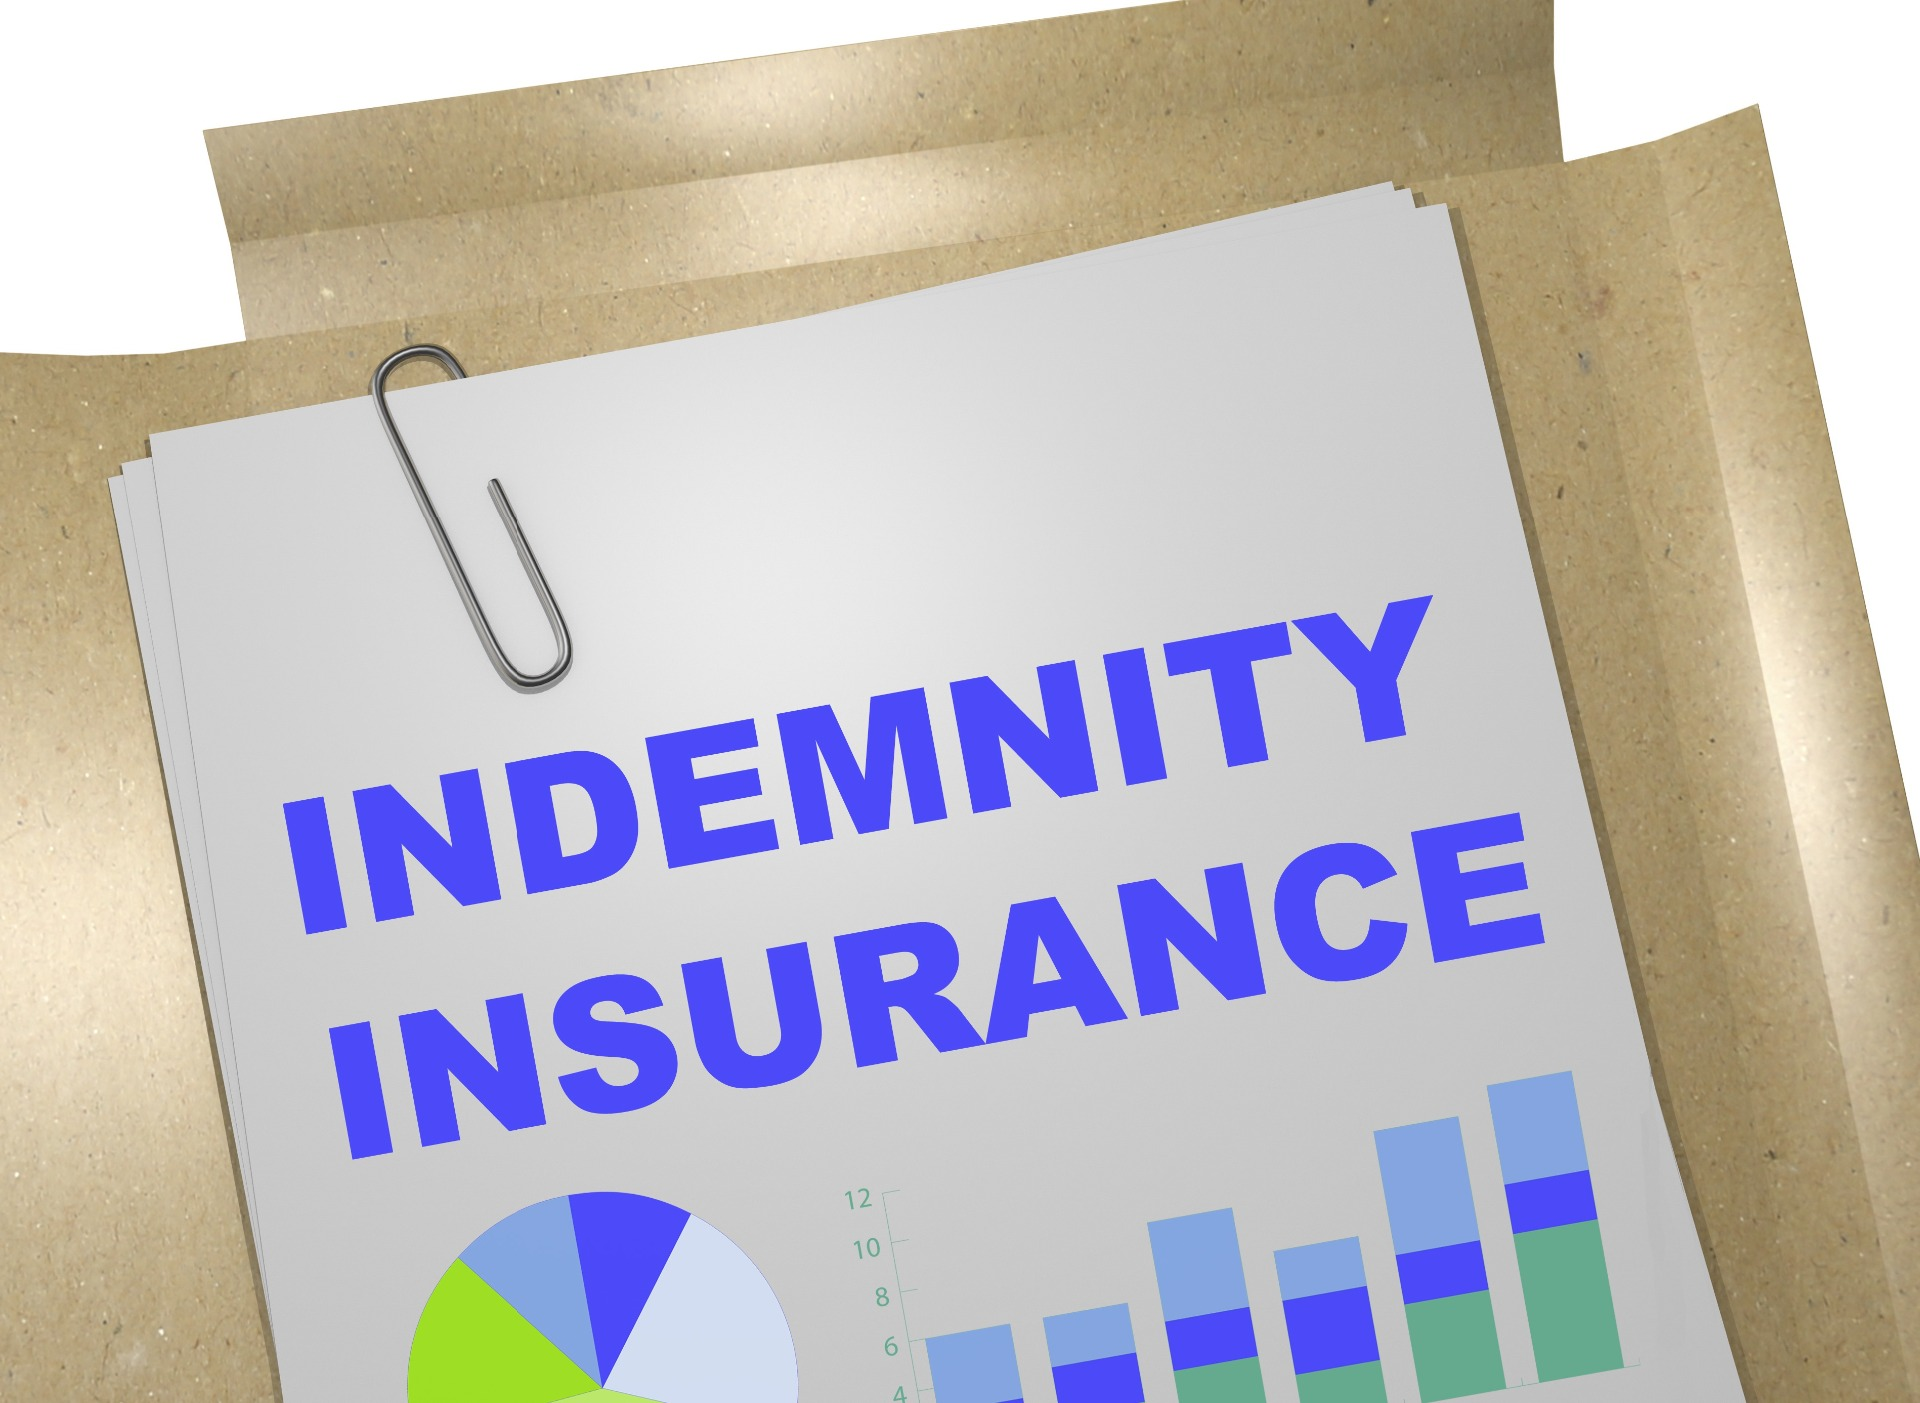 Indemnity Insurance For Building Regulations | Property ...